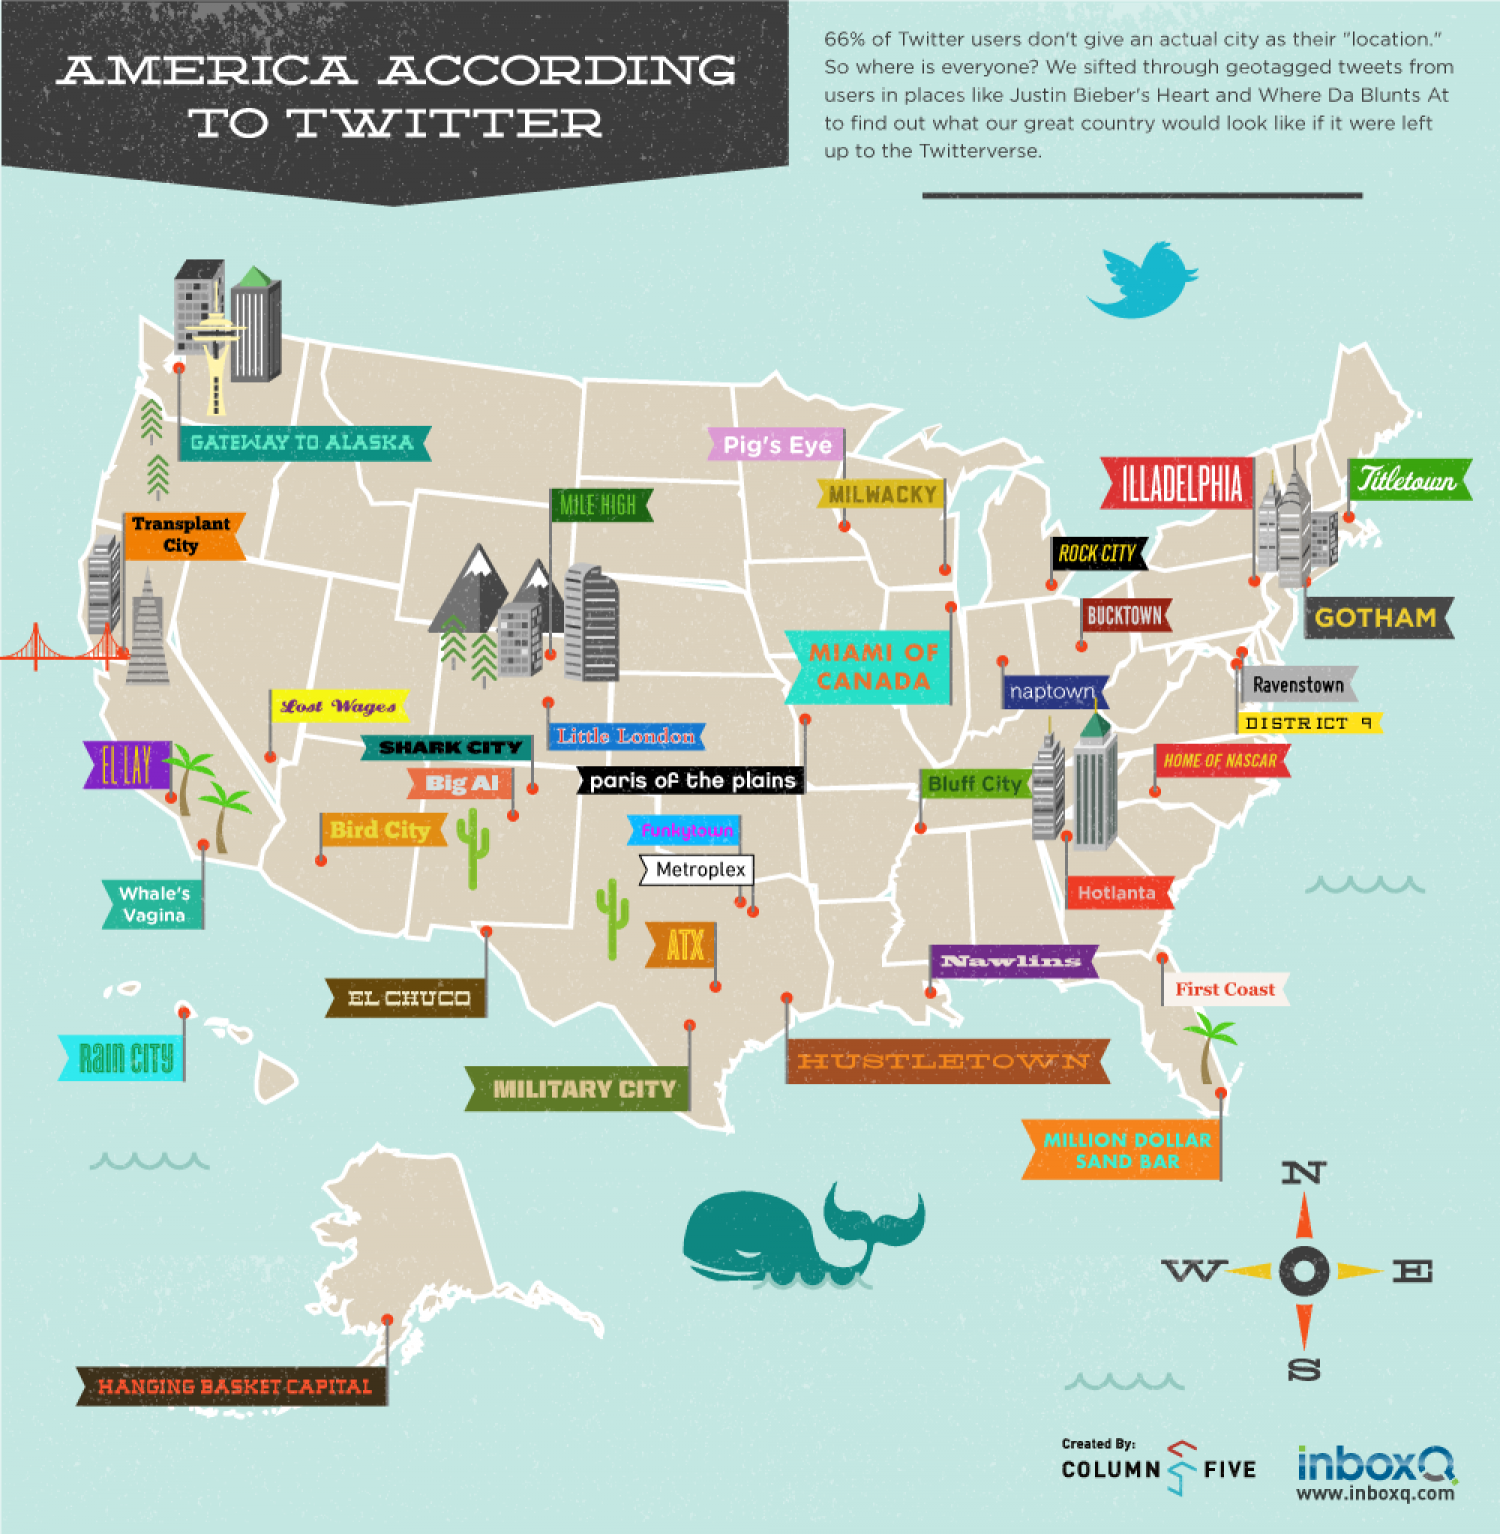 America According to Twitter  Infographic